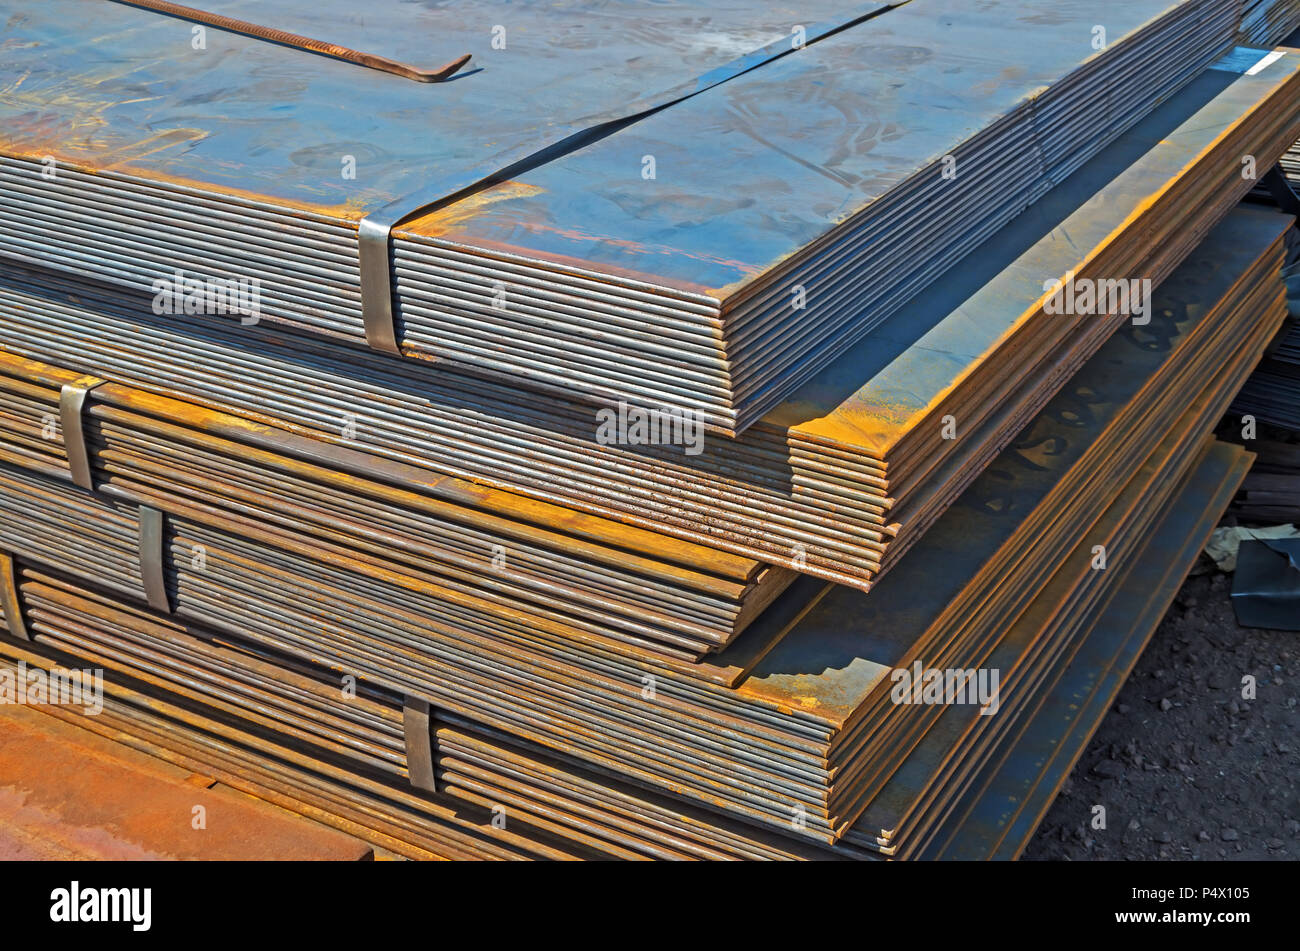 The rusty hot-rolled sheet metal in packs at the warehouse of metal products piled in the open air Stock Photo